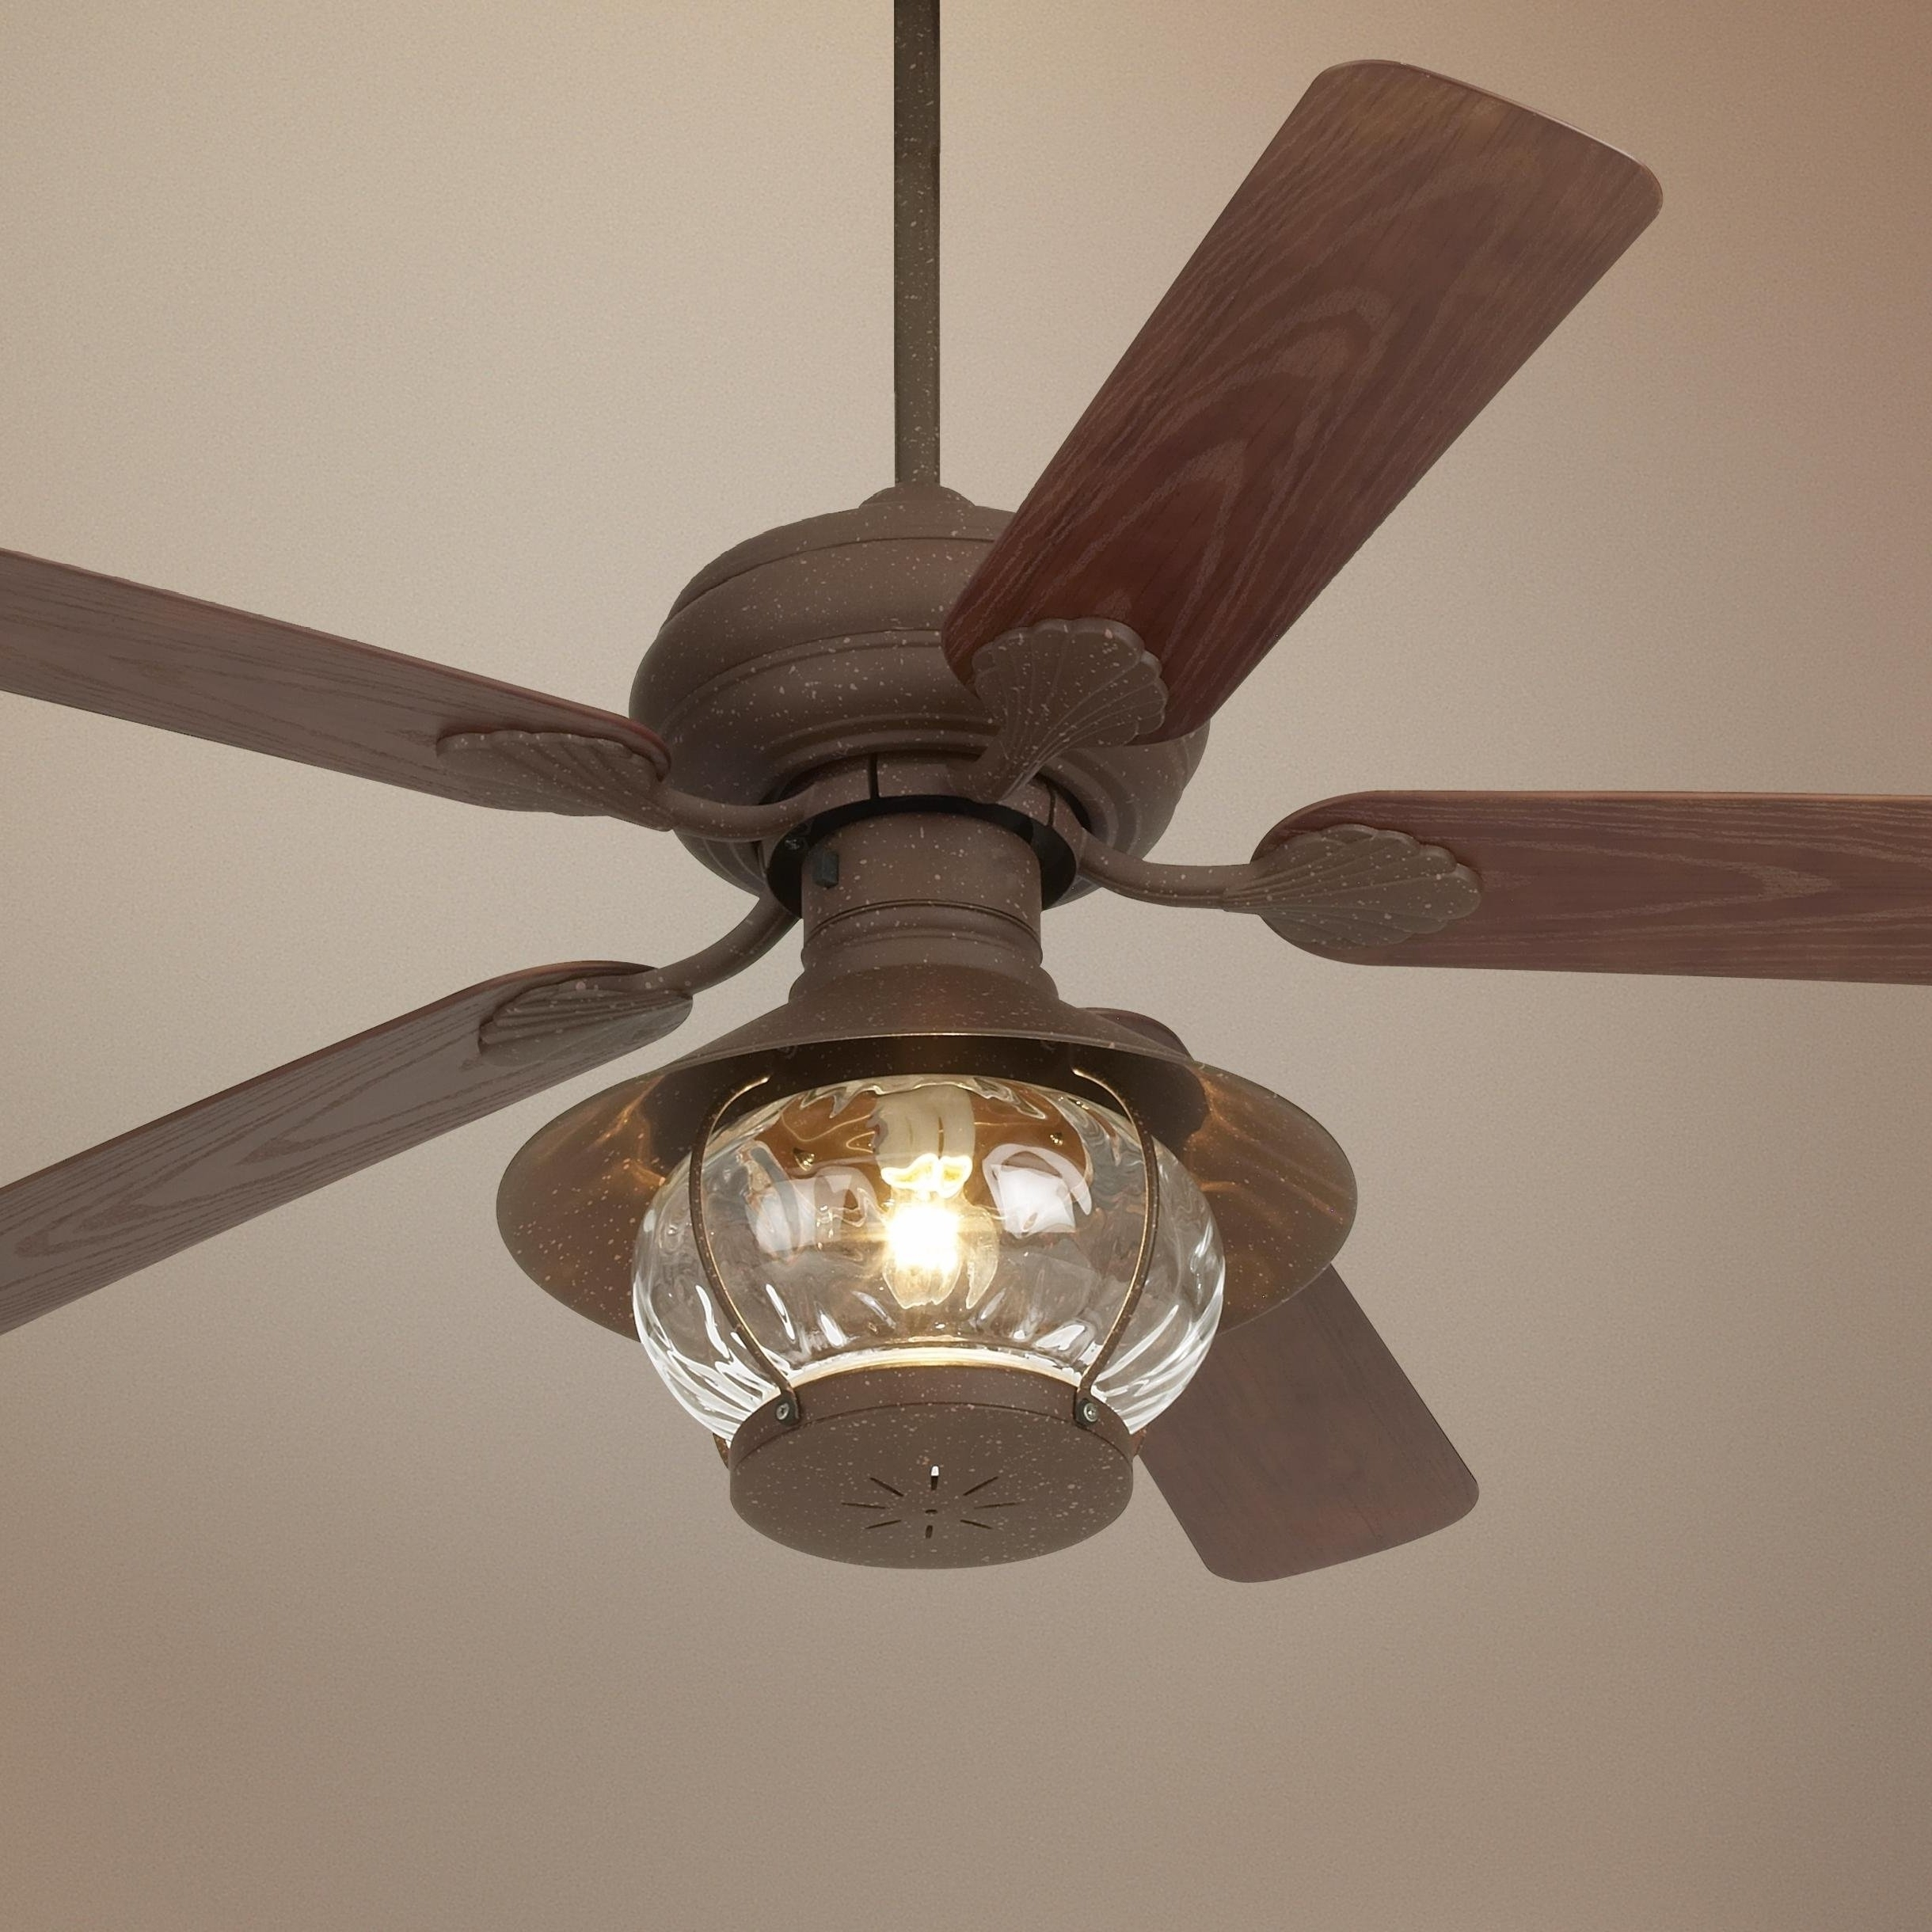 Rustic Outdoor Ceiling Fans With Lights Pertaining To Well Liked Radiant Ceiling Rustic Outdoor Ceiling Fans Western Light Pertaining (View 18 of 20)